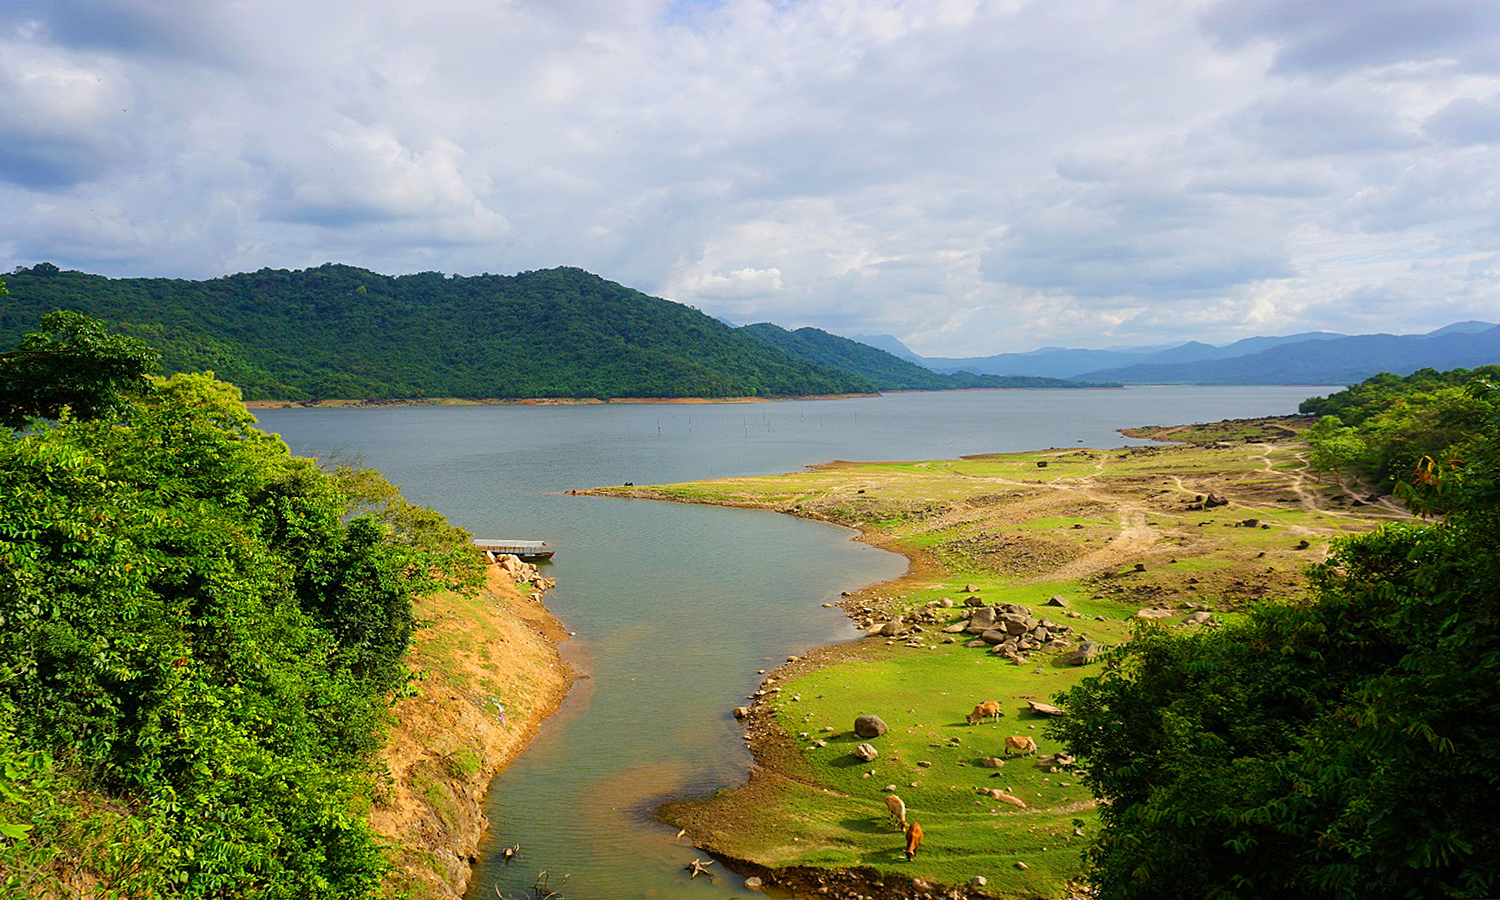 Nui Mot Lake in An Nhon Town, the central province of Binh Dinh. Photo by VnExpress/Hien Trang.